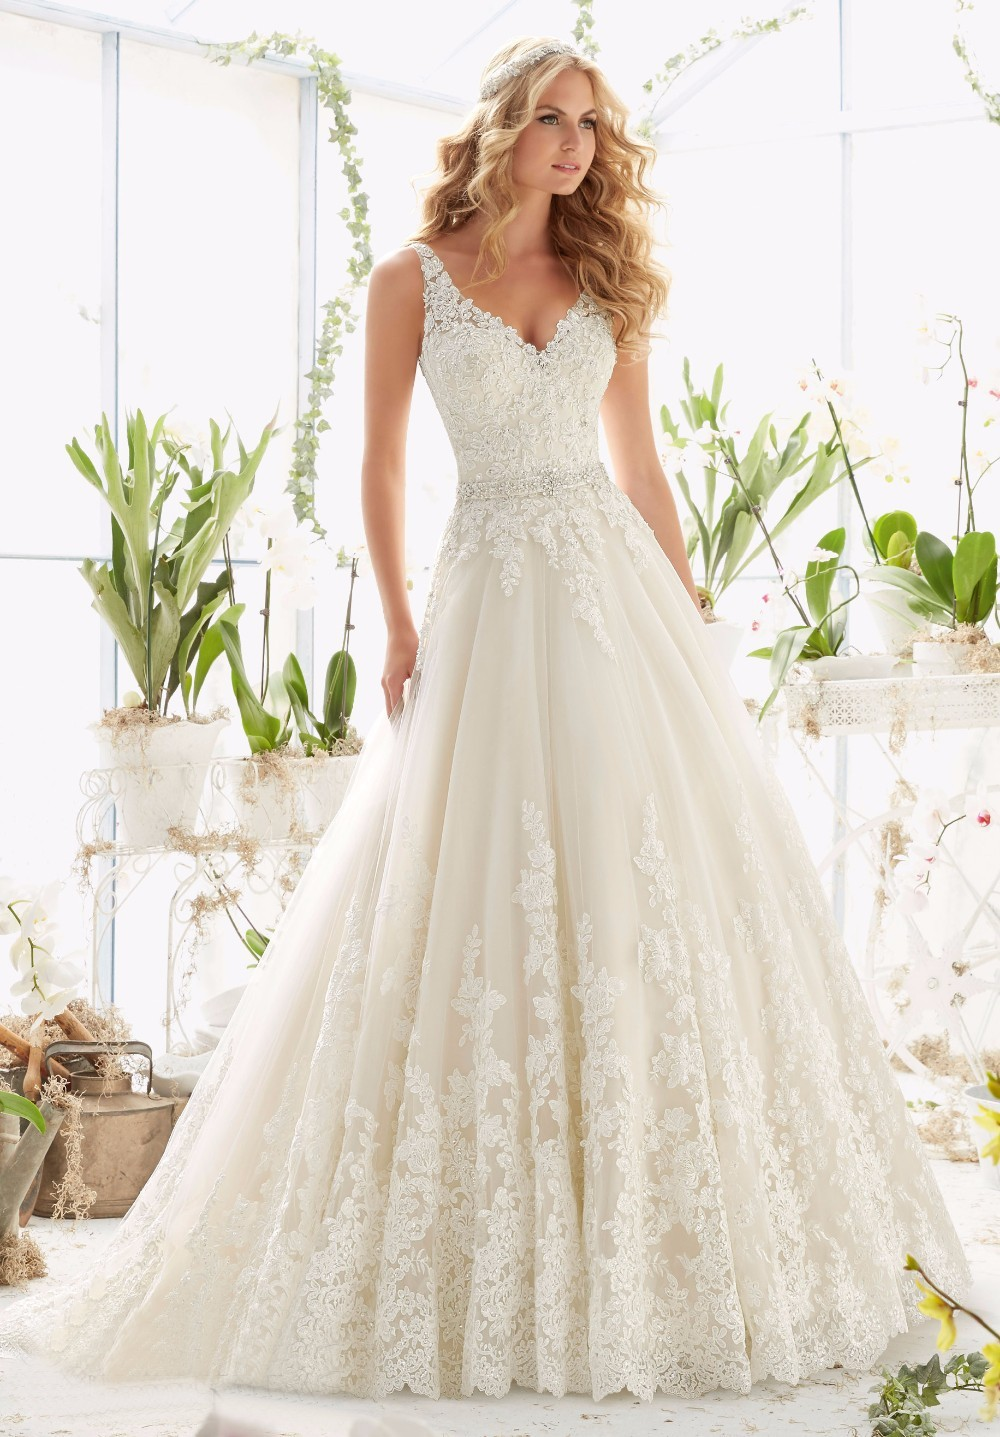 Vivian's Bridal 2018 Fashion Deep V Neck A-line Wedding Dress Sleeveless Backless Lace Applique Sashes Floor-length Bridal Dress